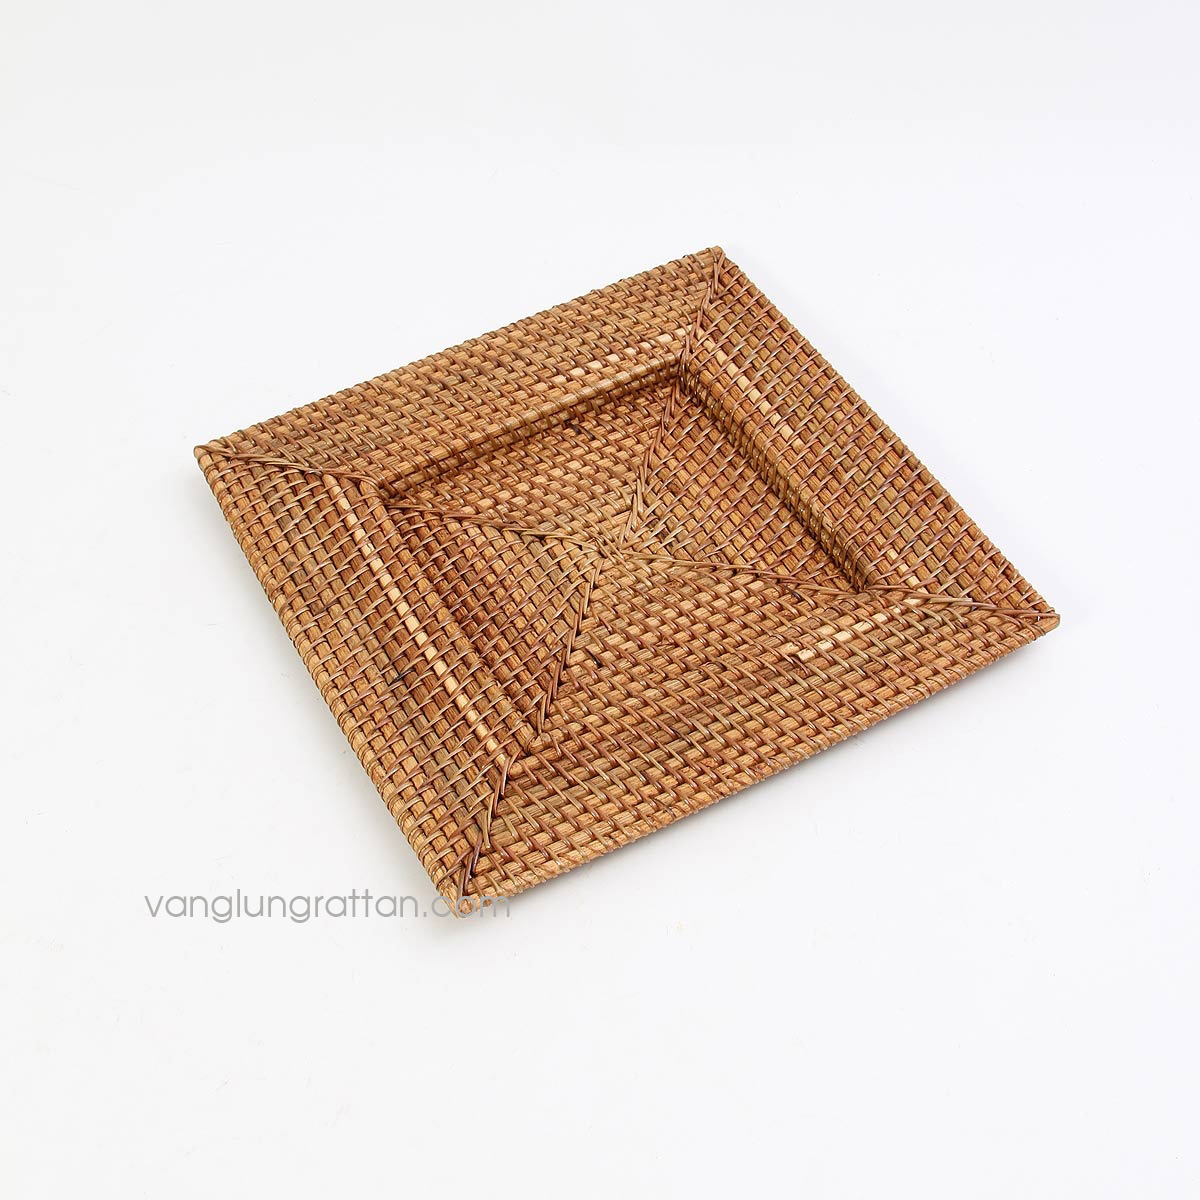 Square bamboo rattan charger plate 33x33xH2cm